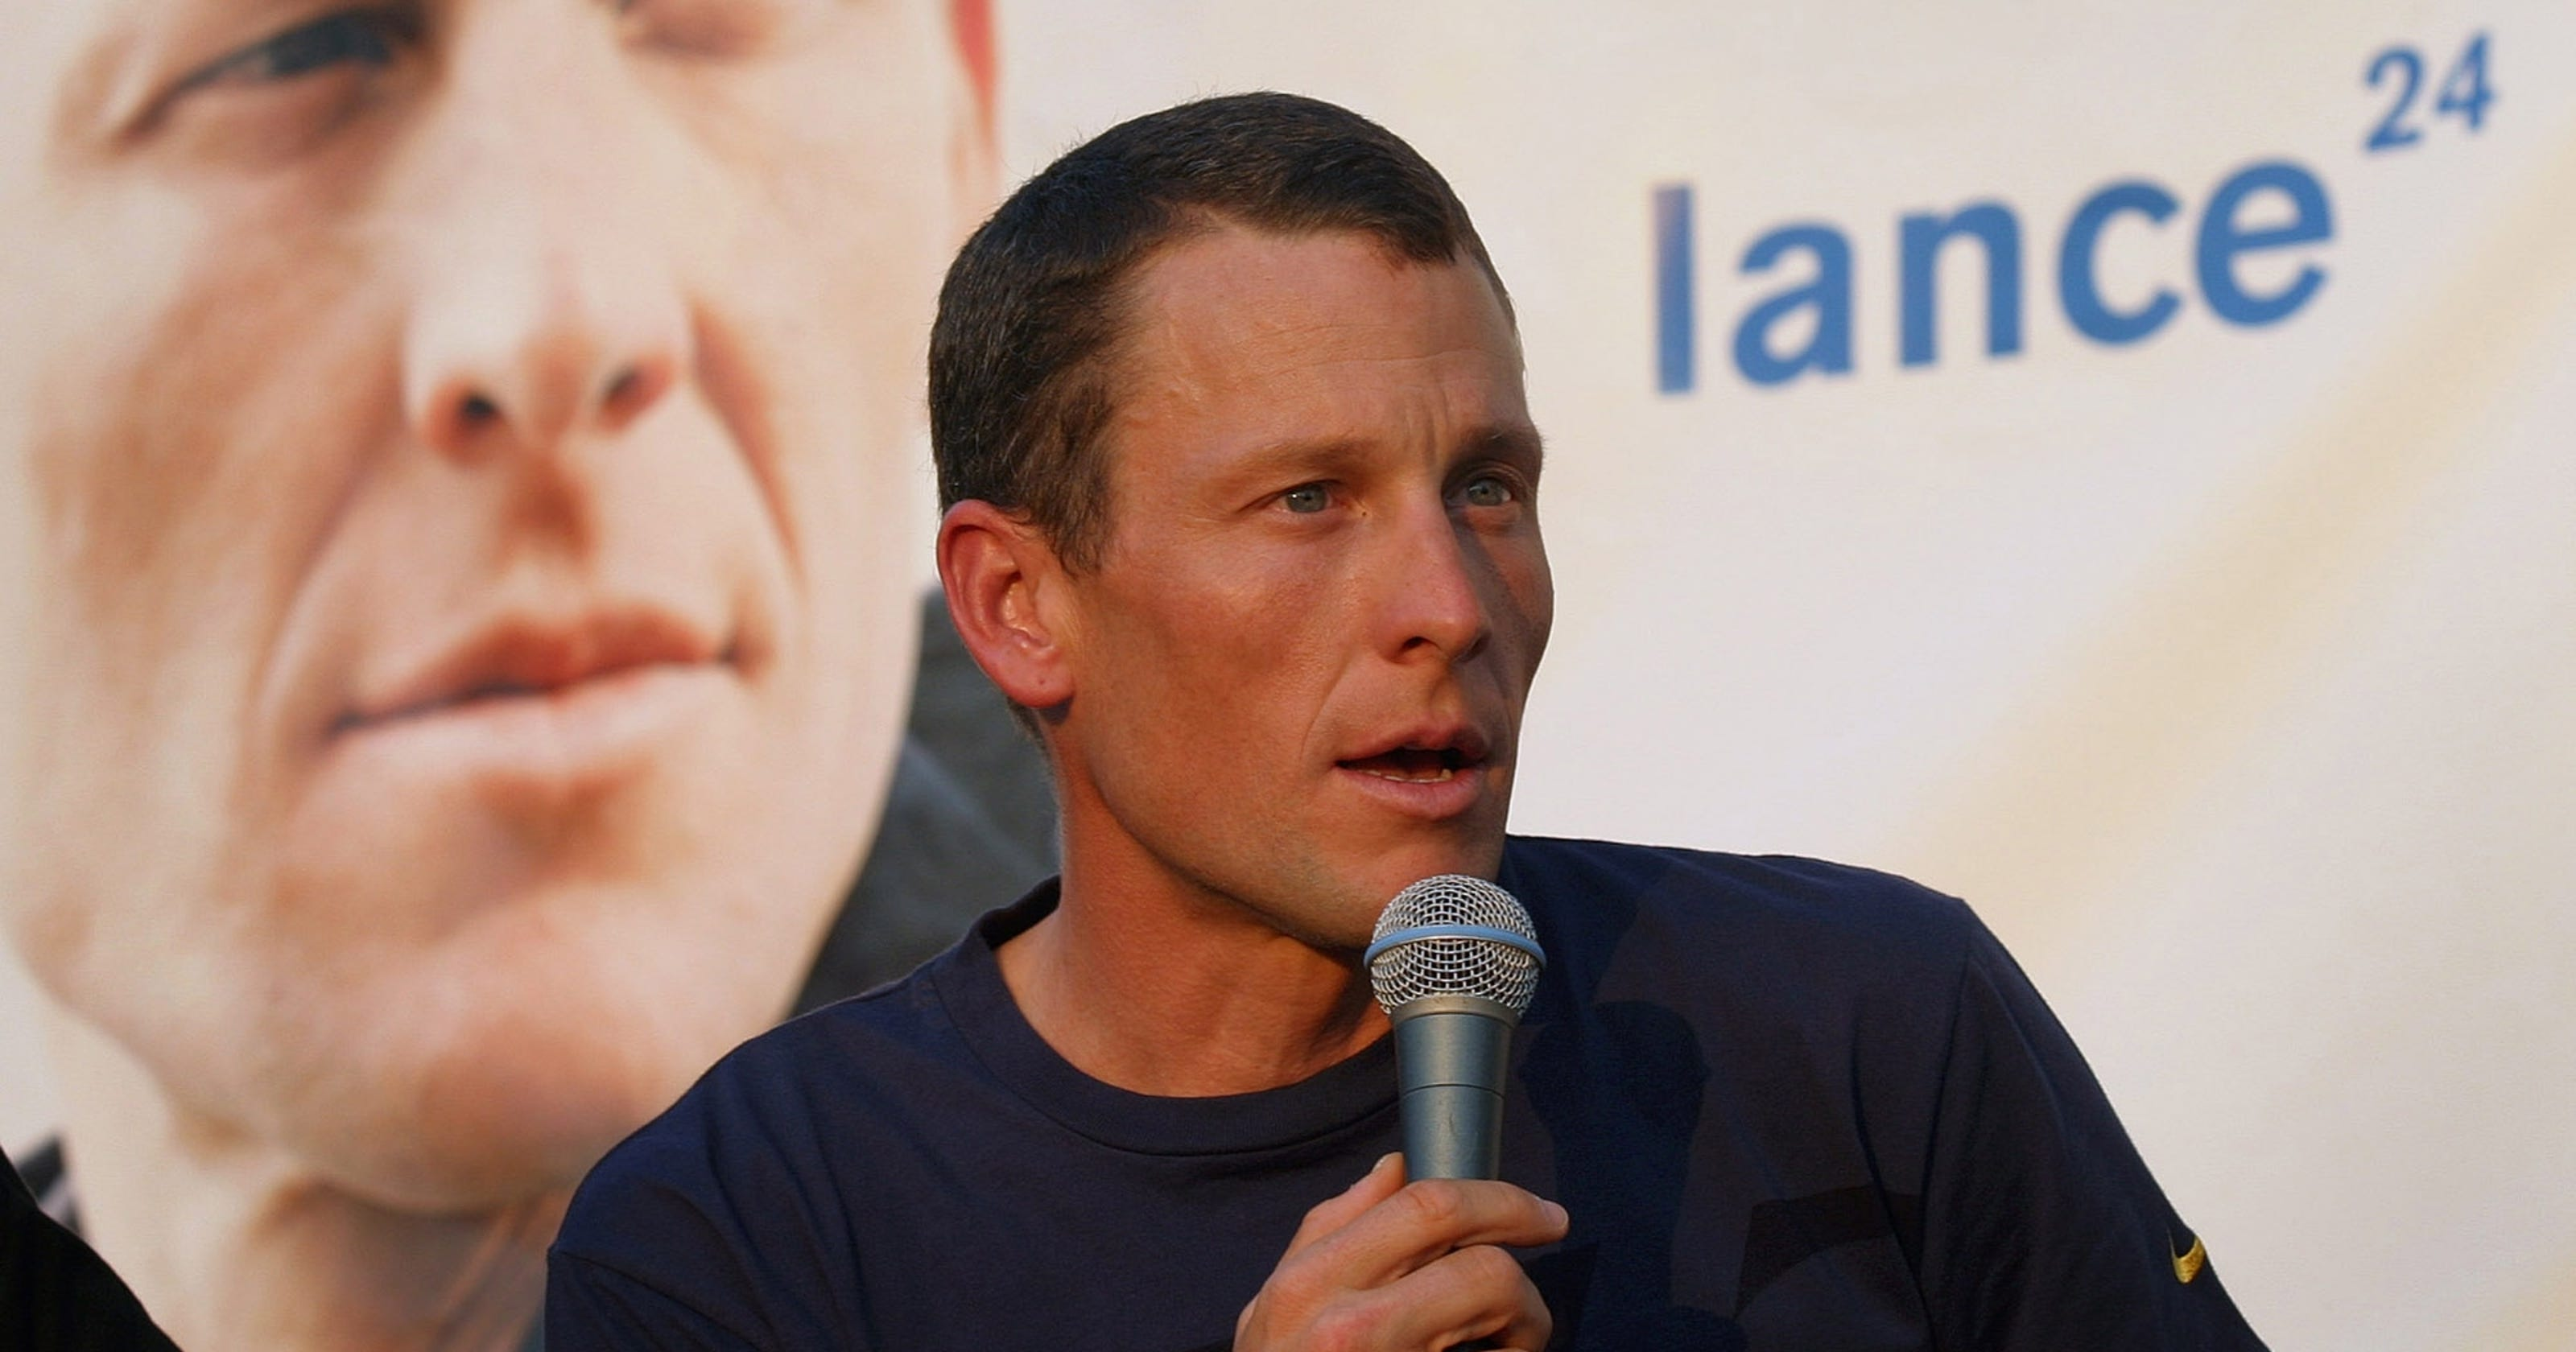 No fewer than 7 major sponsors drop Lance Armstrong in wake